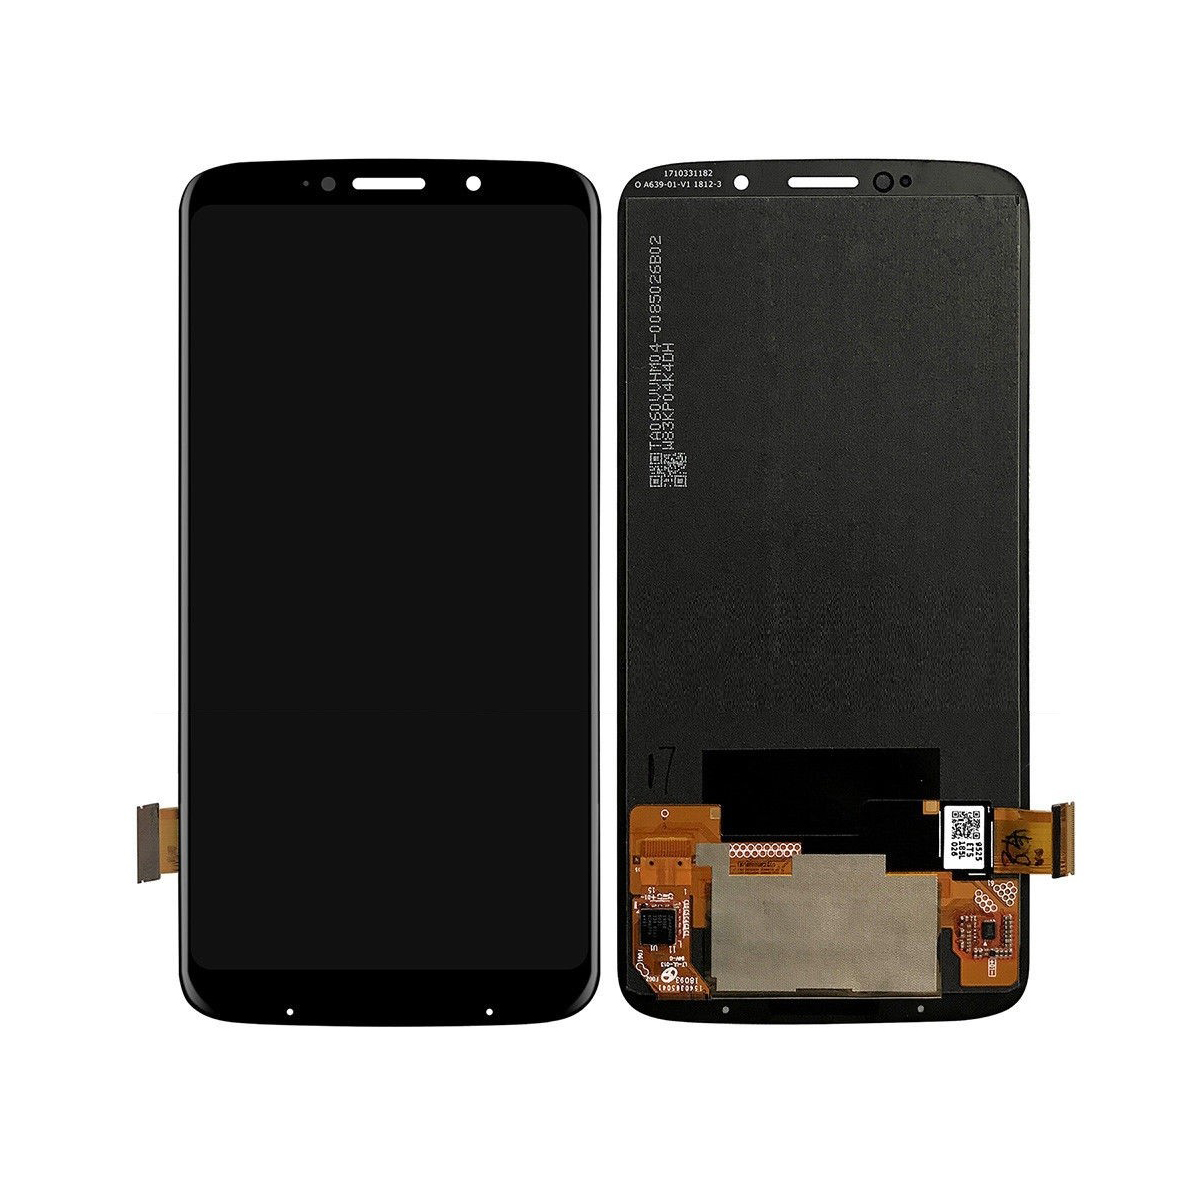 For Motorola Moto Z3 Play XT1929 LCD Display Touch Screen Digitizer Assembly For Moto Z3 Play Replacement Screen With Shadow